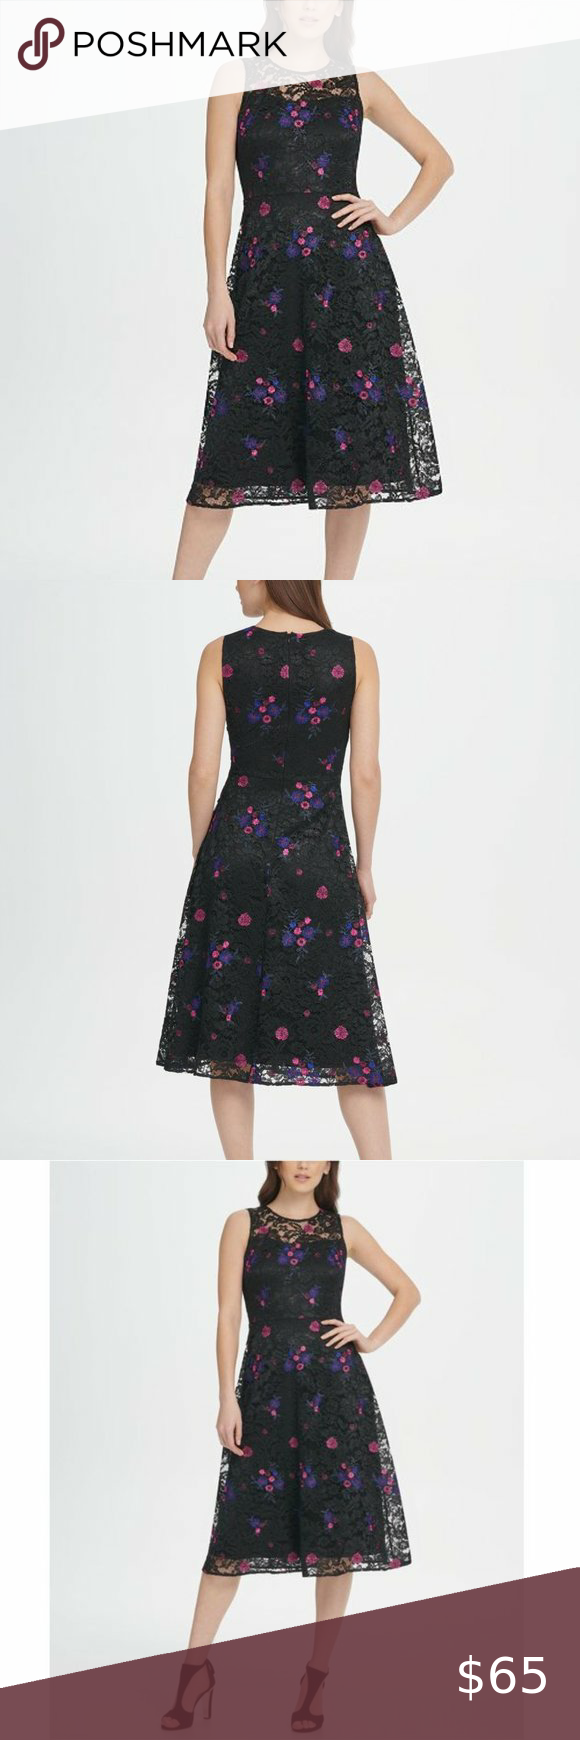 Dkny Embroidered Floral Black Lace Midi Dress 16 Black Lace Midi Dress Midi Dress 16 Lace Midi [ 1740 x 580 Pixel ]